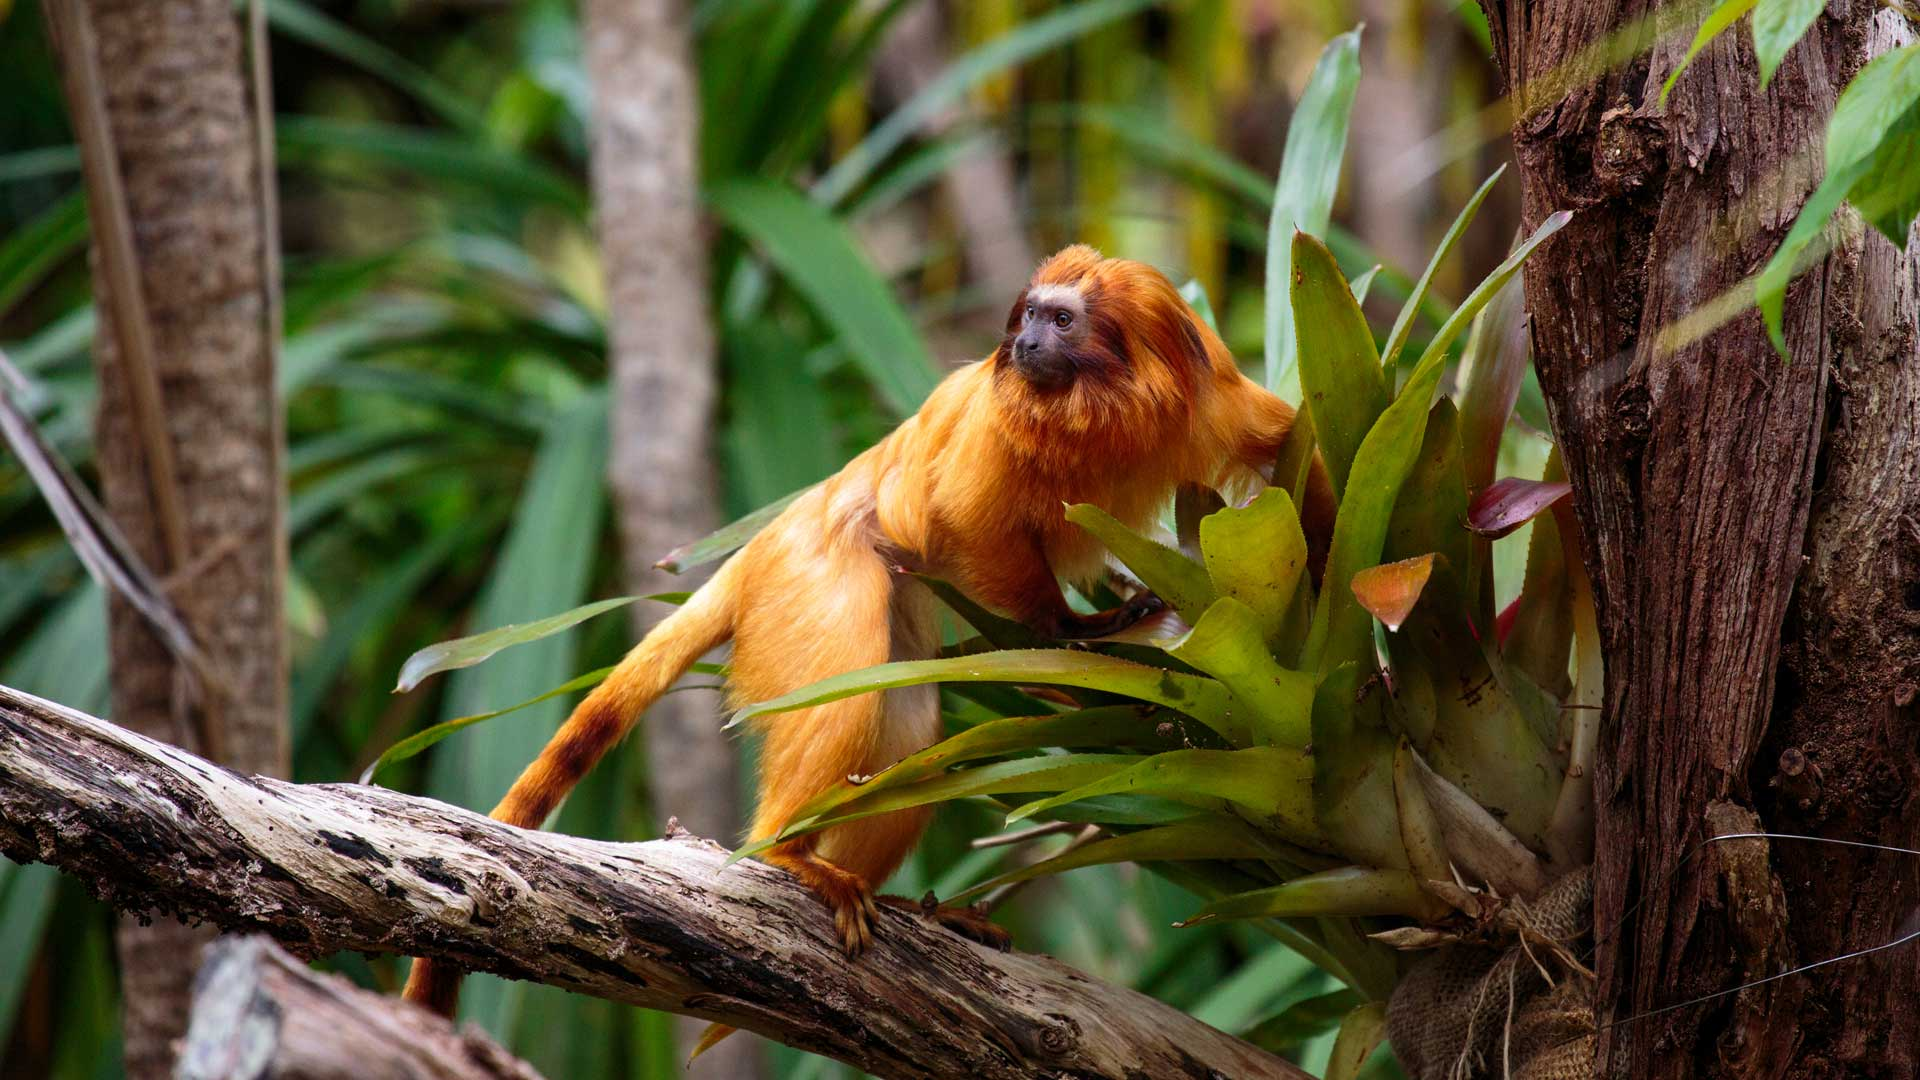 https://rfacdn.nz/zoo/assets/media/golden-lion-tamarin-gallery-4.jpg